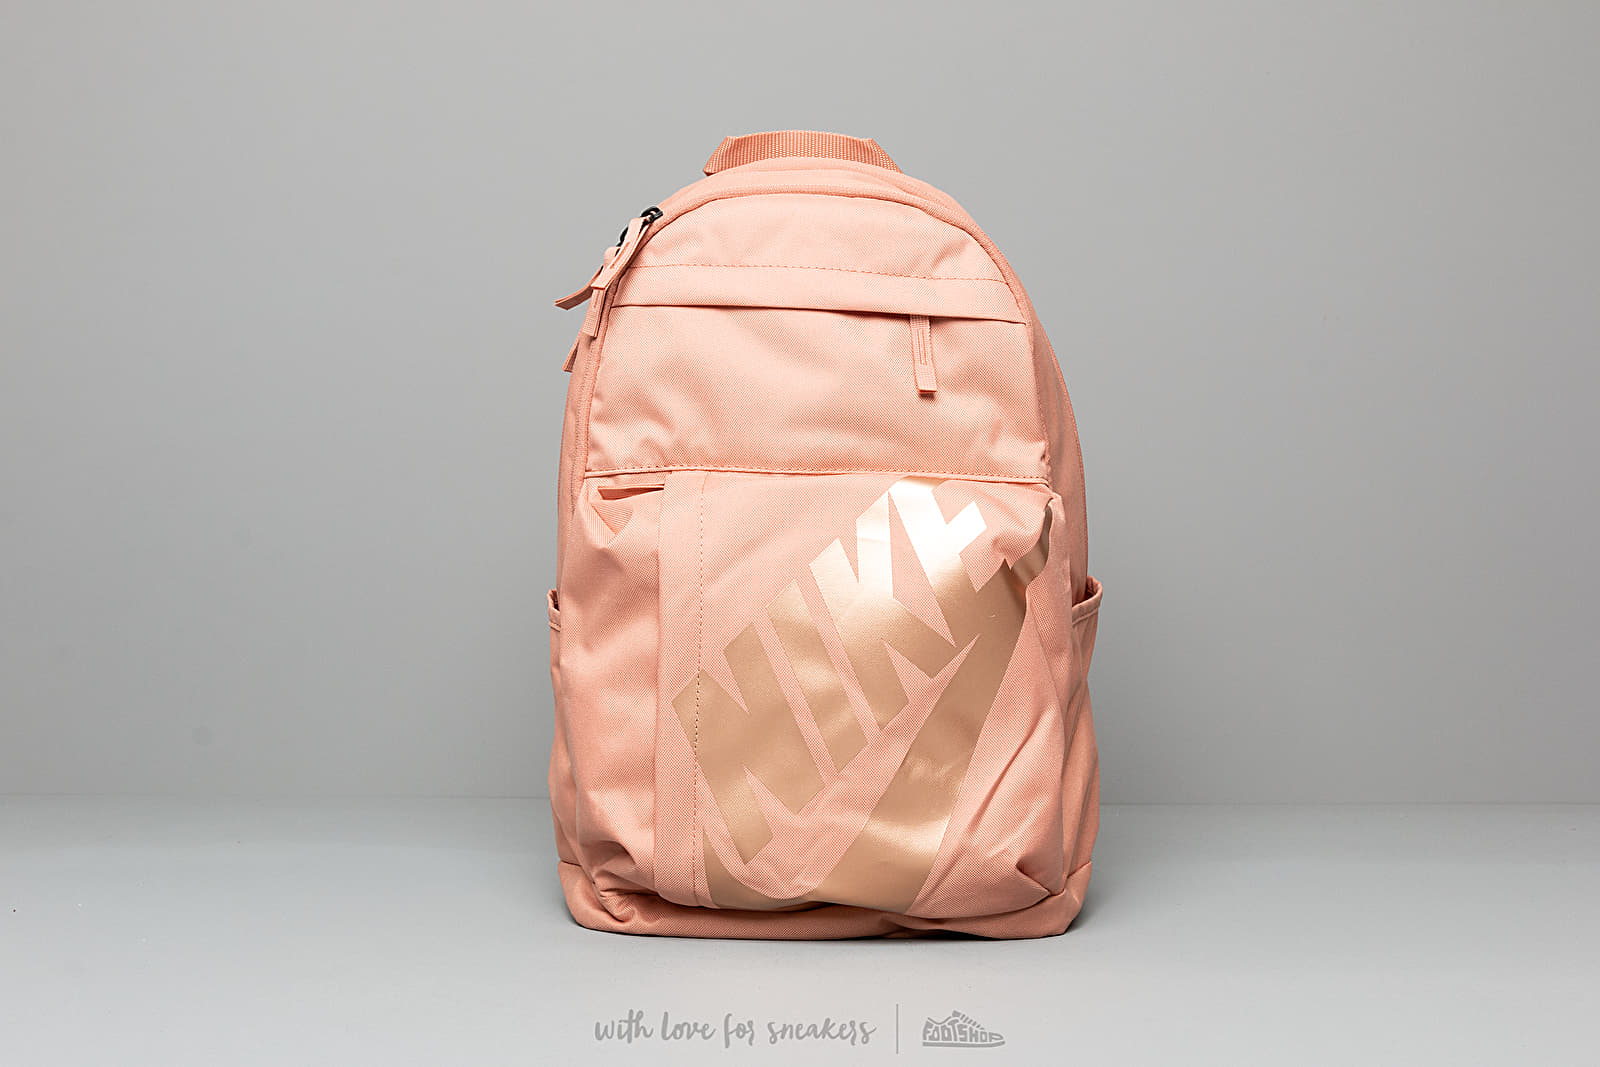 Elemental Backpack Nike Nike Elemental Backpack Rose Rose GoldFootshop mwNv8On0